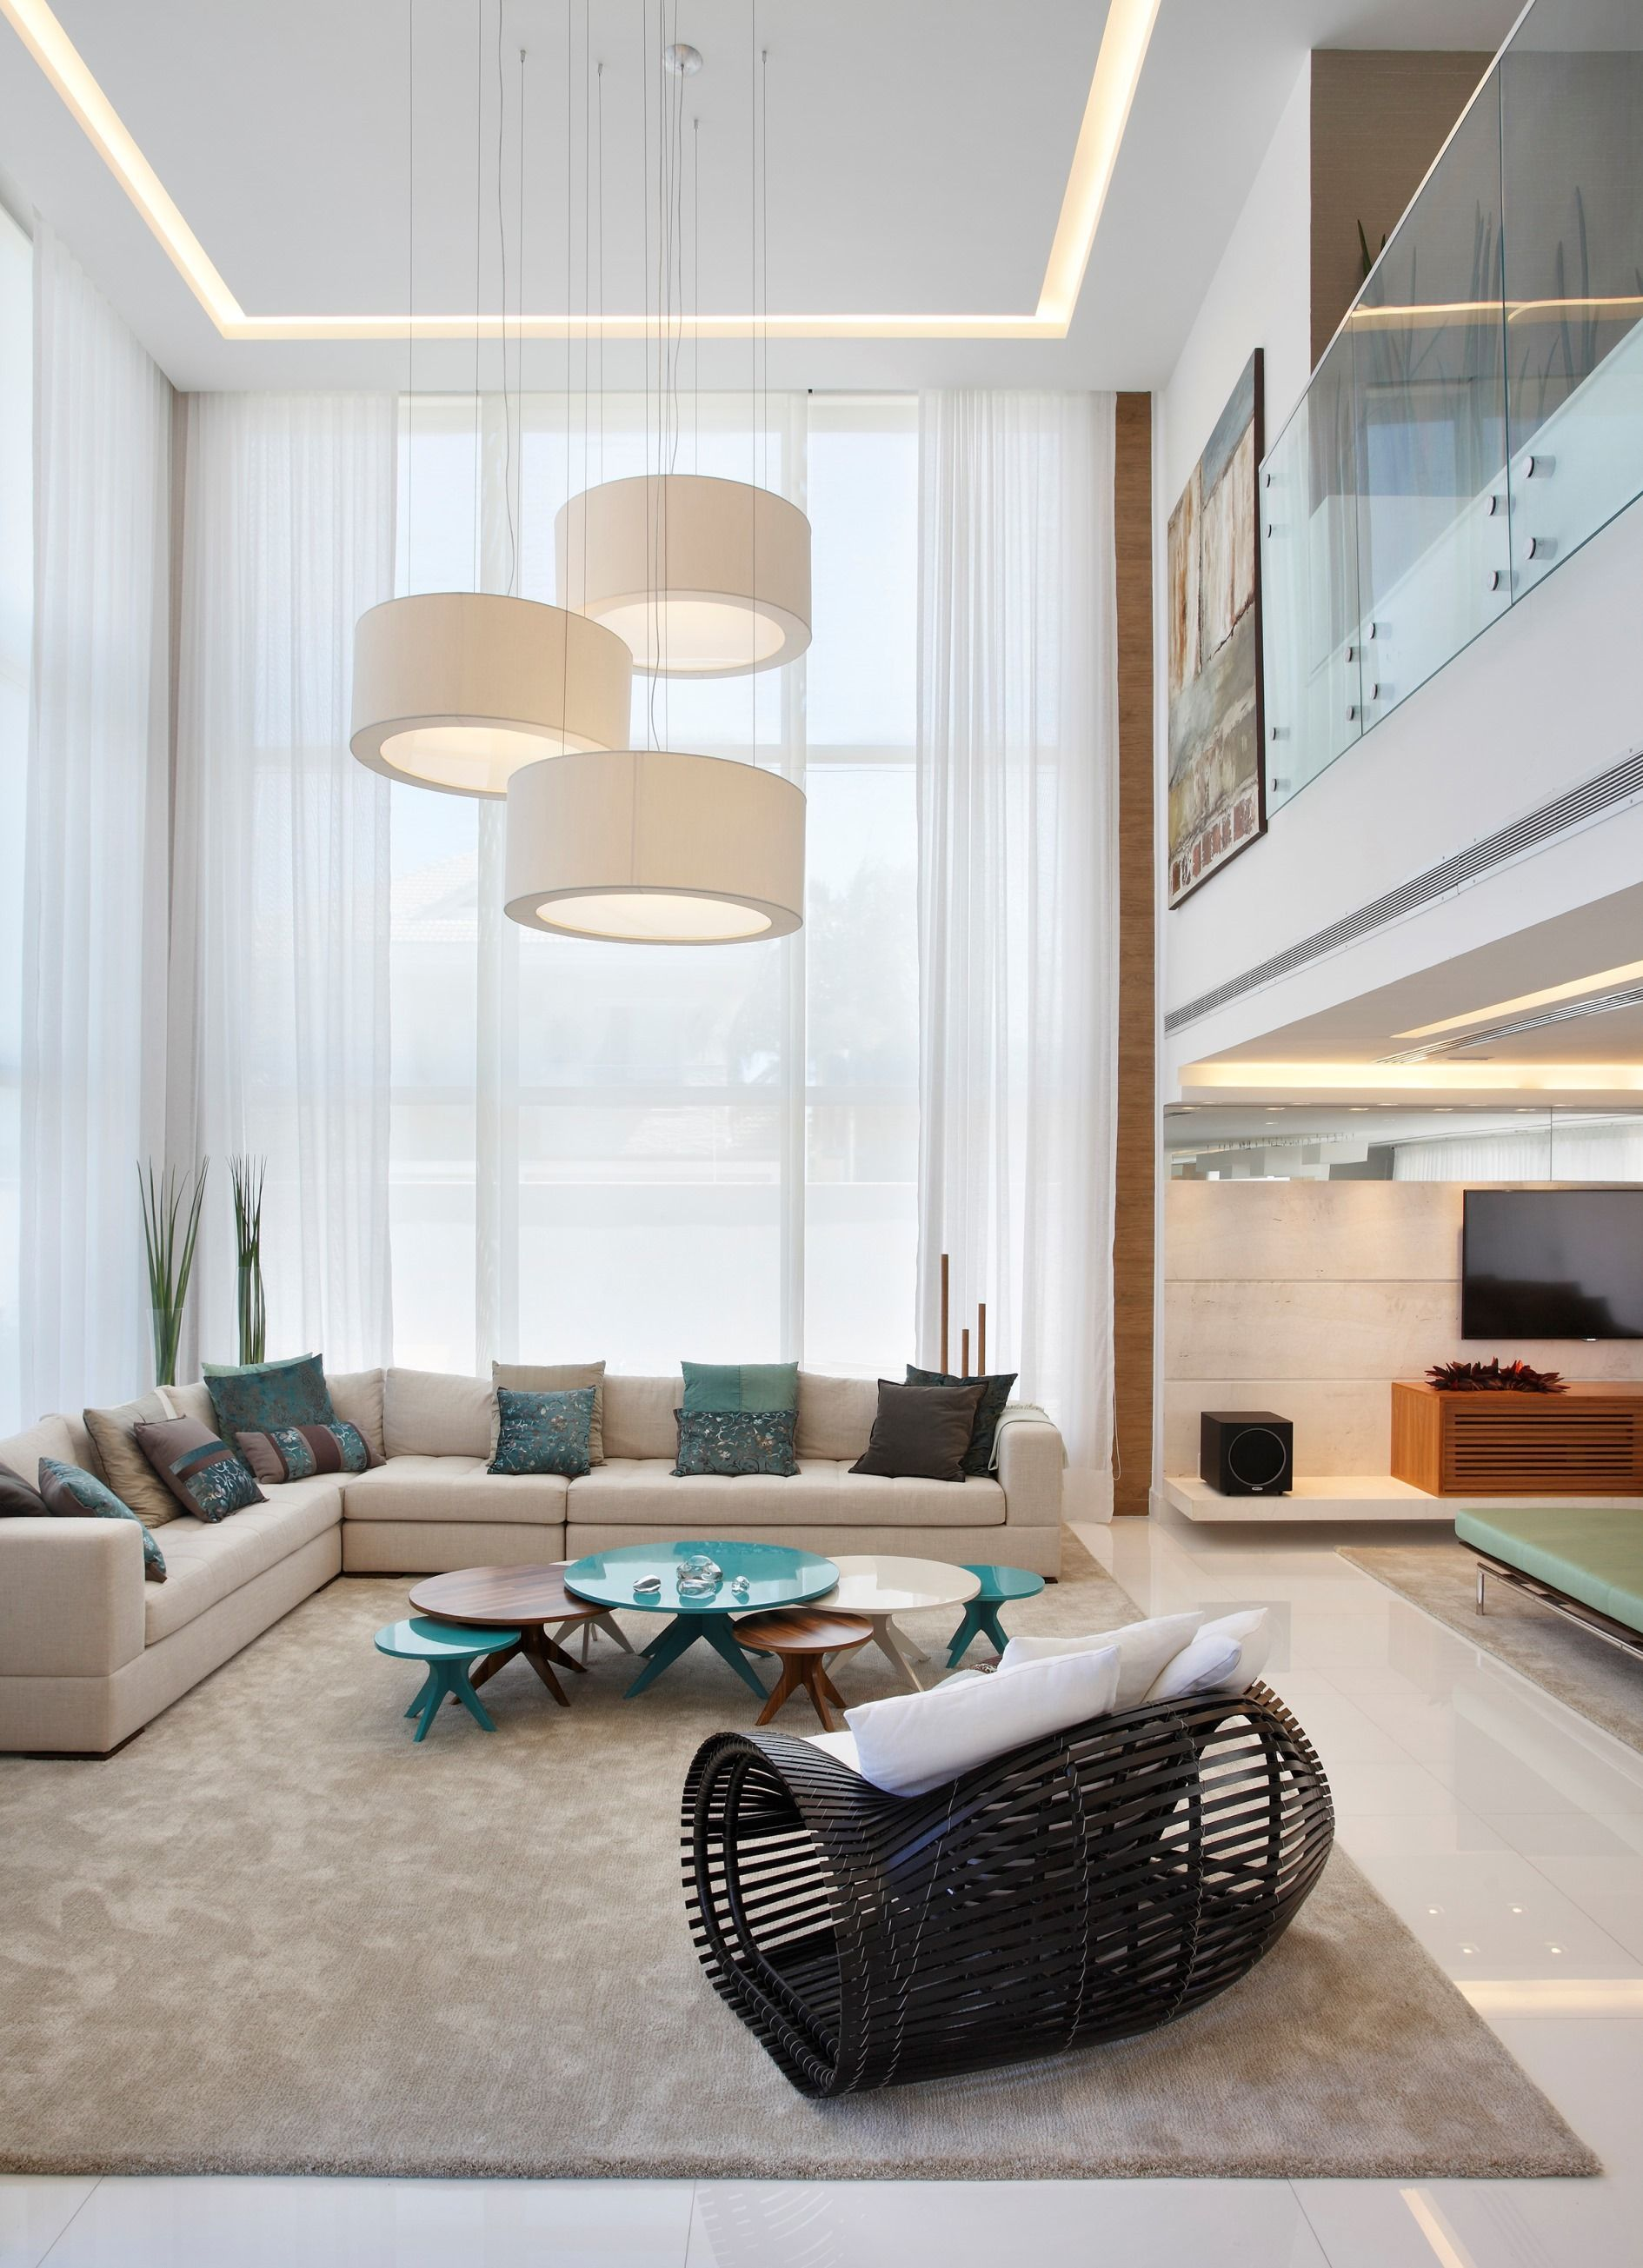 55 Beautiful Minimalist Living Room Ideas For Your Dream Home In 2020 High Ceiling Living Room Minimalist Living Room Luxury Living Room